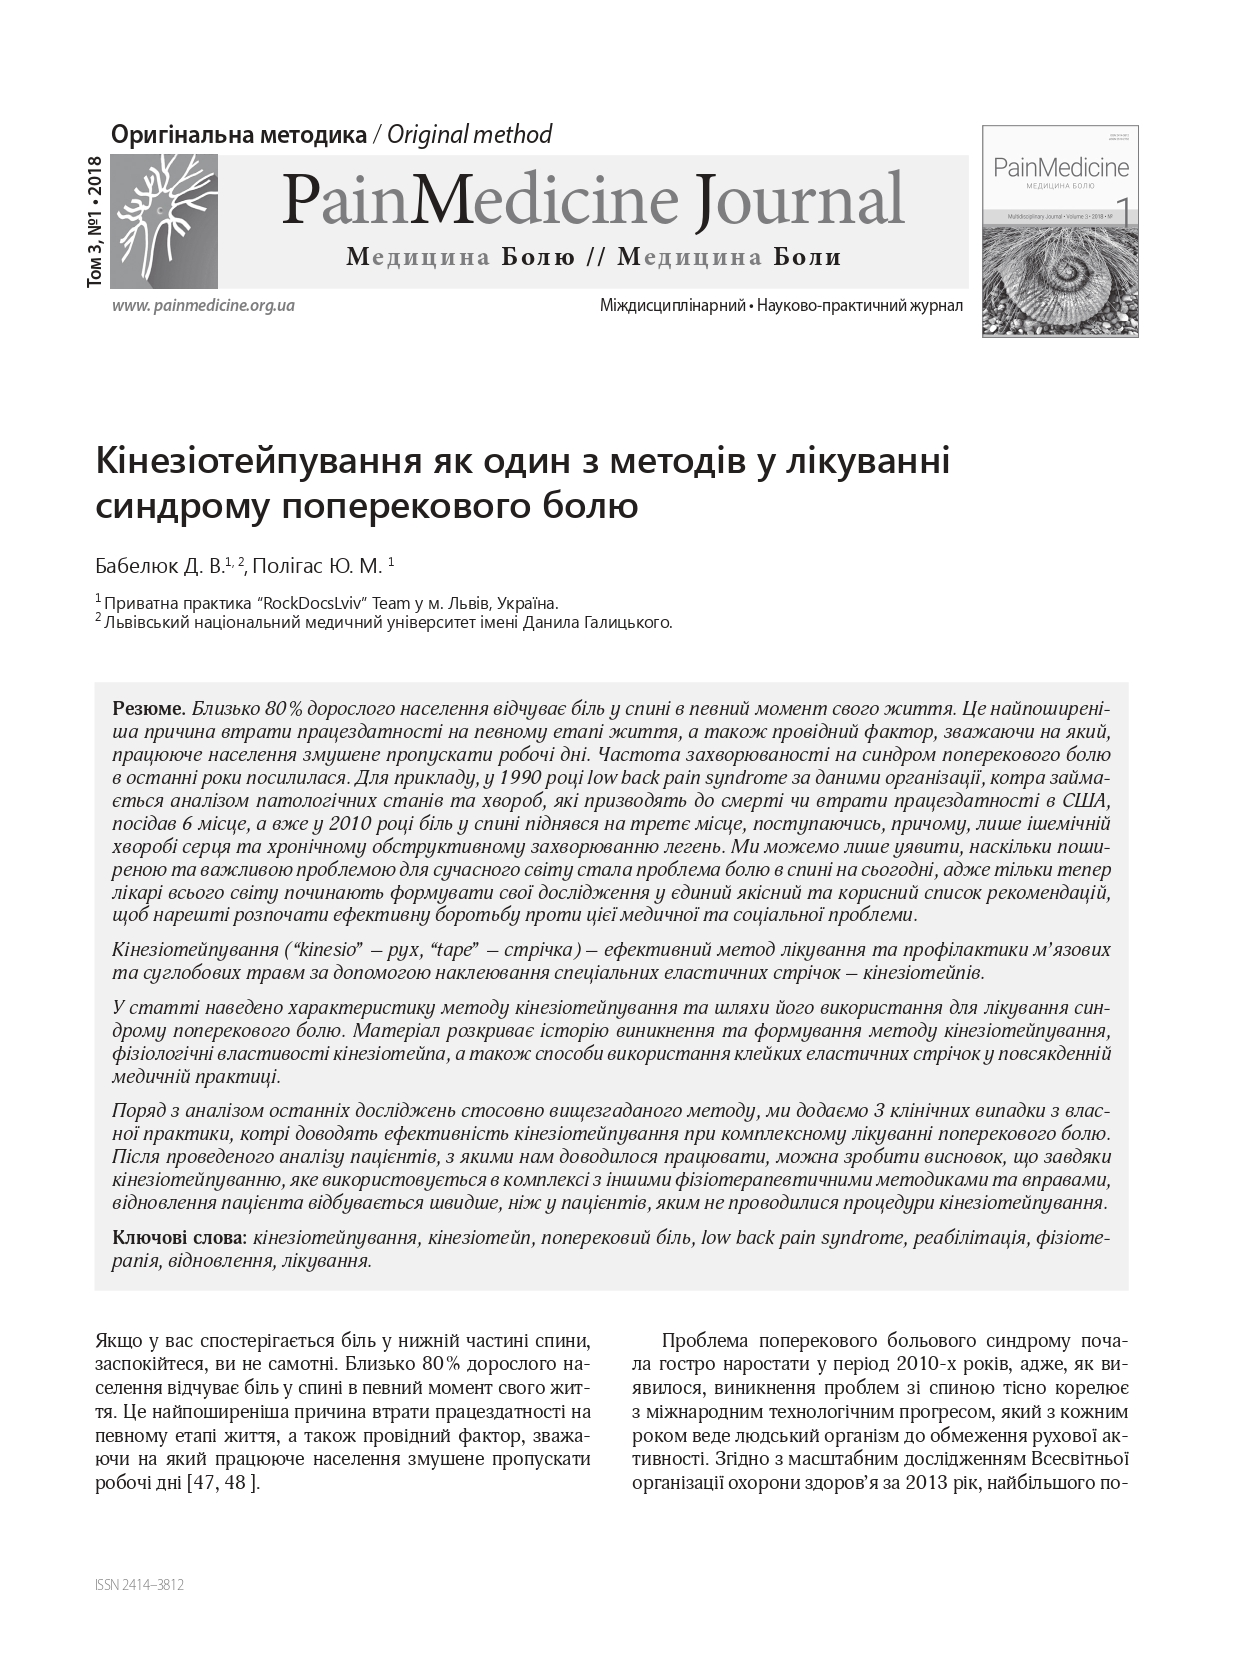 Kinesiotaping as one of the methods of treatment of low back pain syndrome